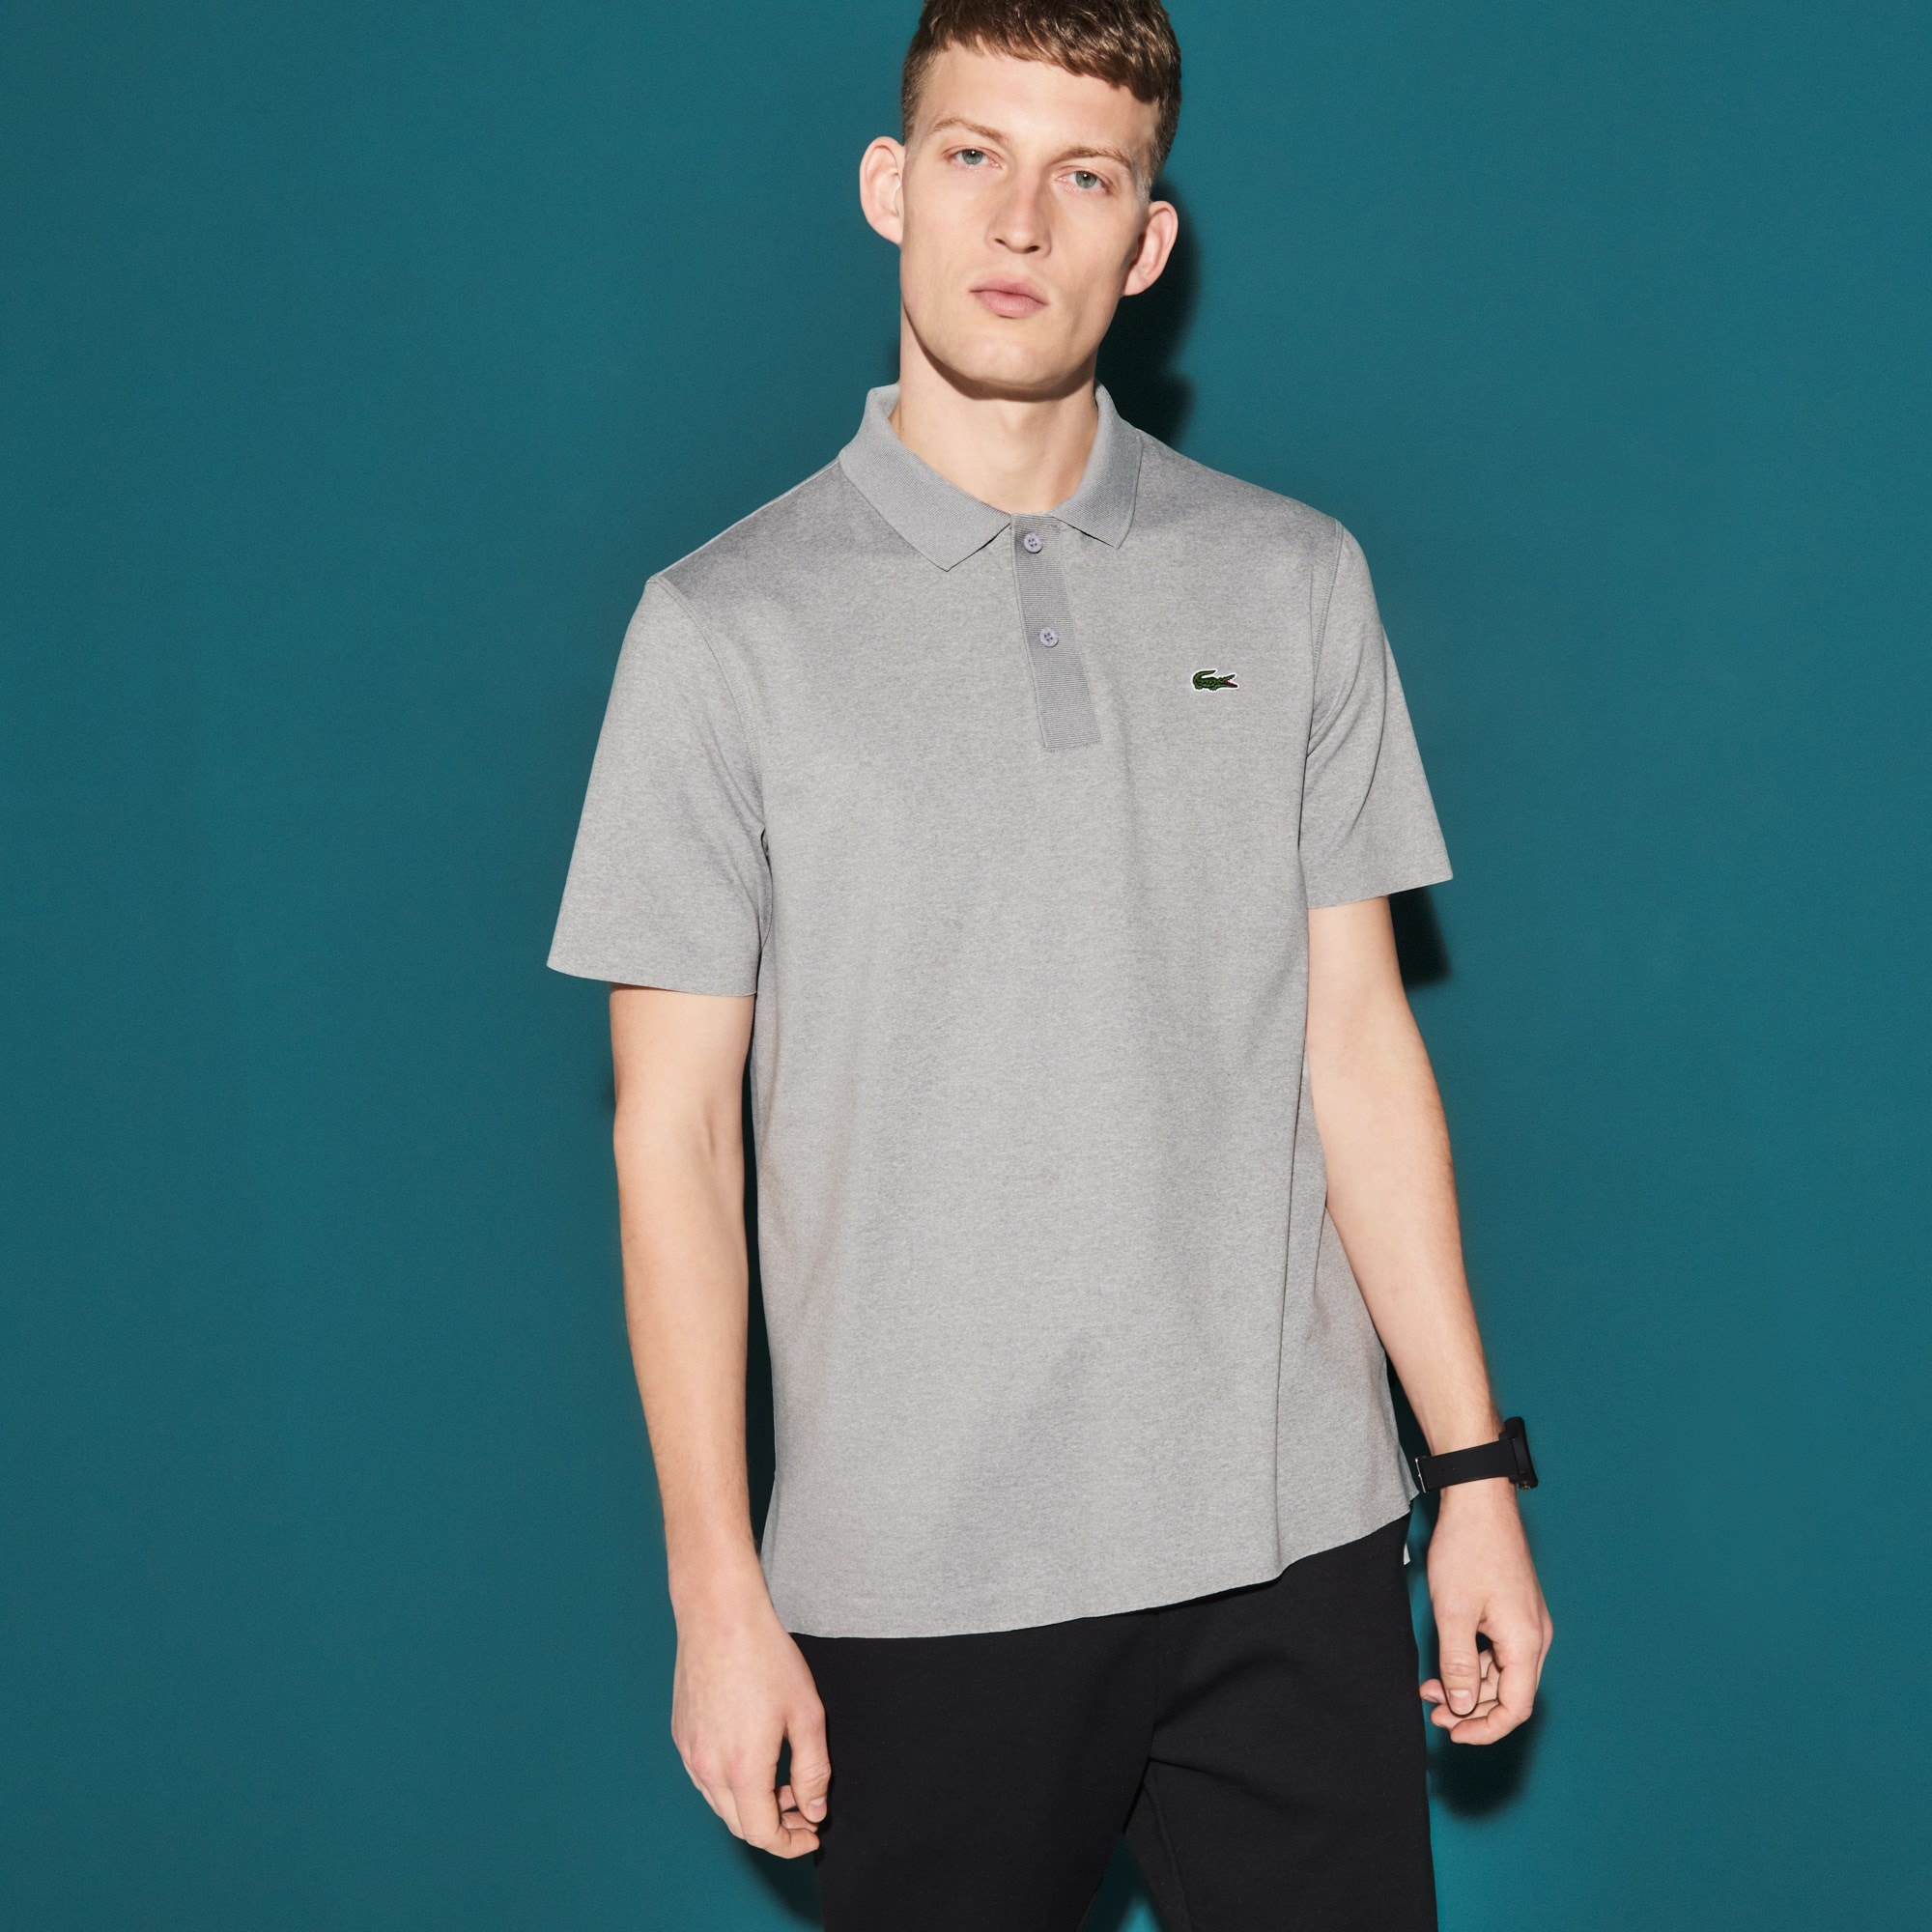 Men's Lacoste SPORT Flecked Stretch Jersey Tennis Polo